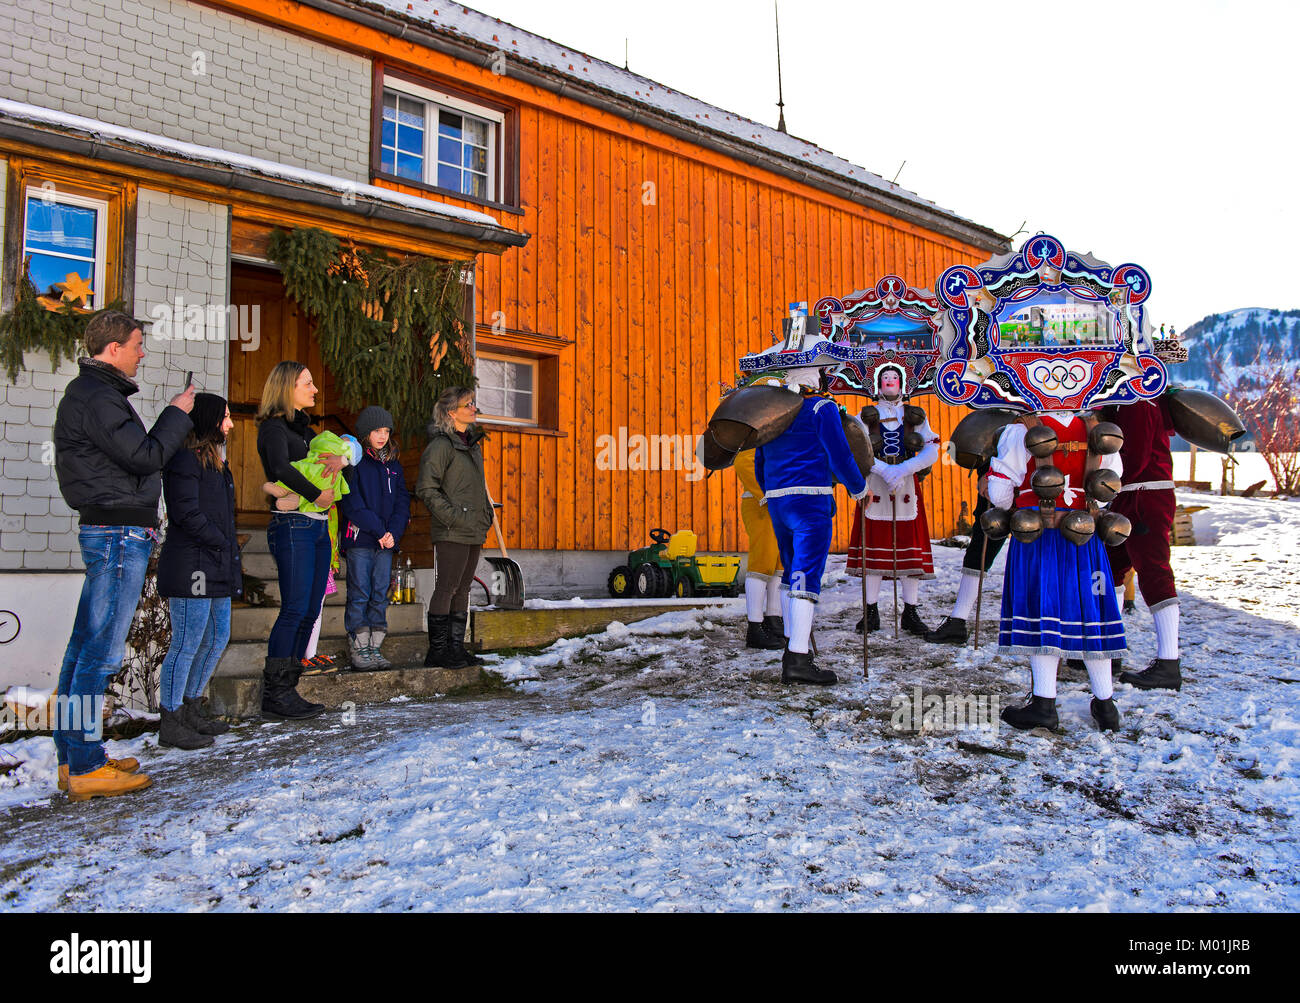 Beautiful Chläuse, St Sylvester mummers, extending New Year's wishes, Urnäsch Old Silvester procession, - Stock Image